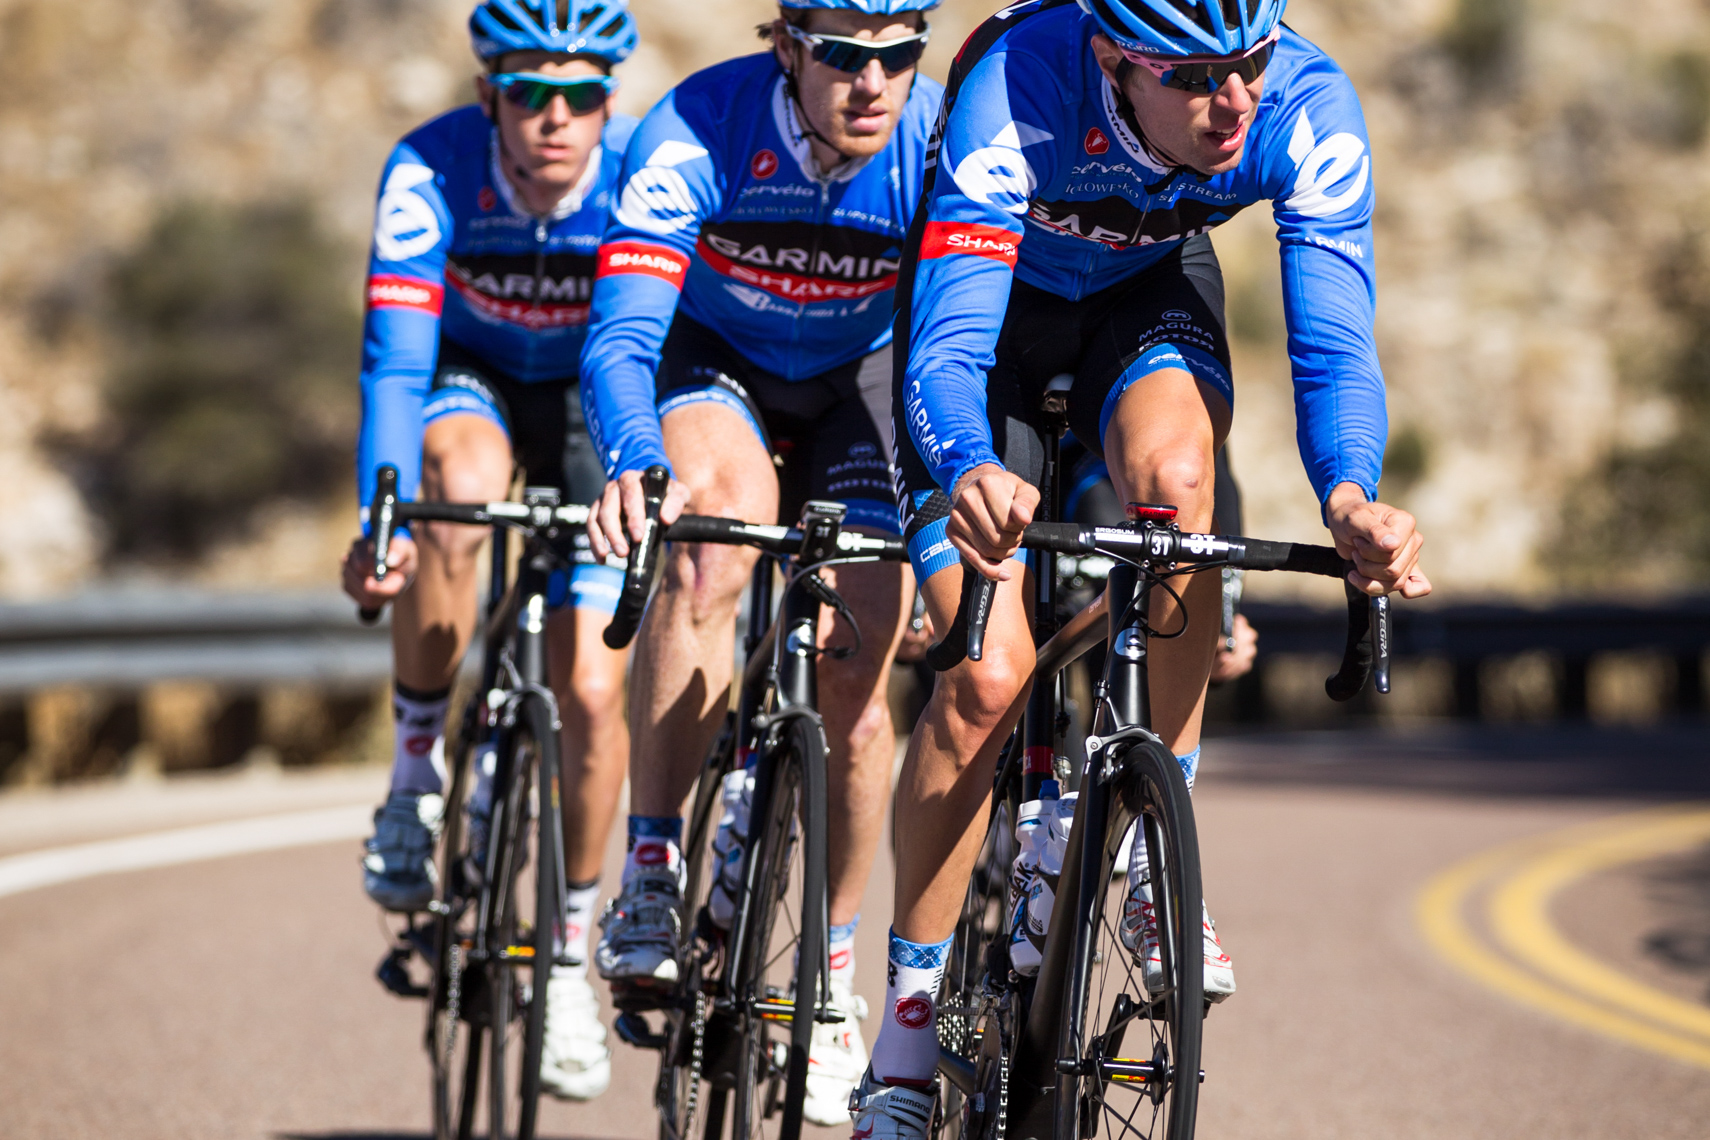 Cervelo-Garmin-Sharp-Cycling-San-Francisco-Sports-Photographer-8043